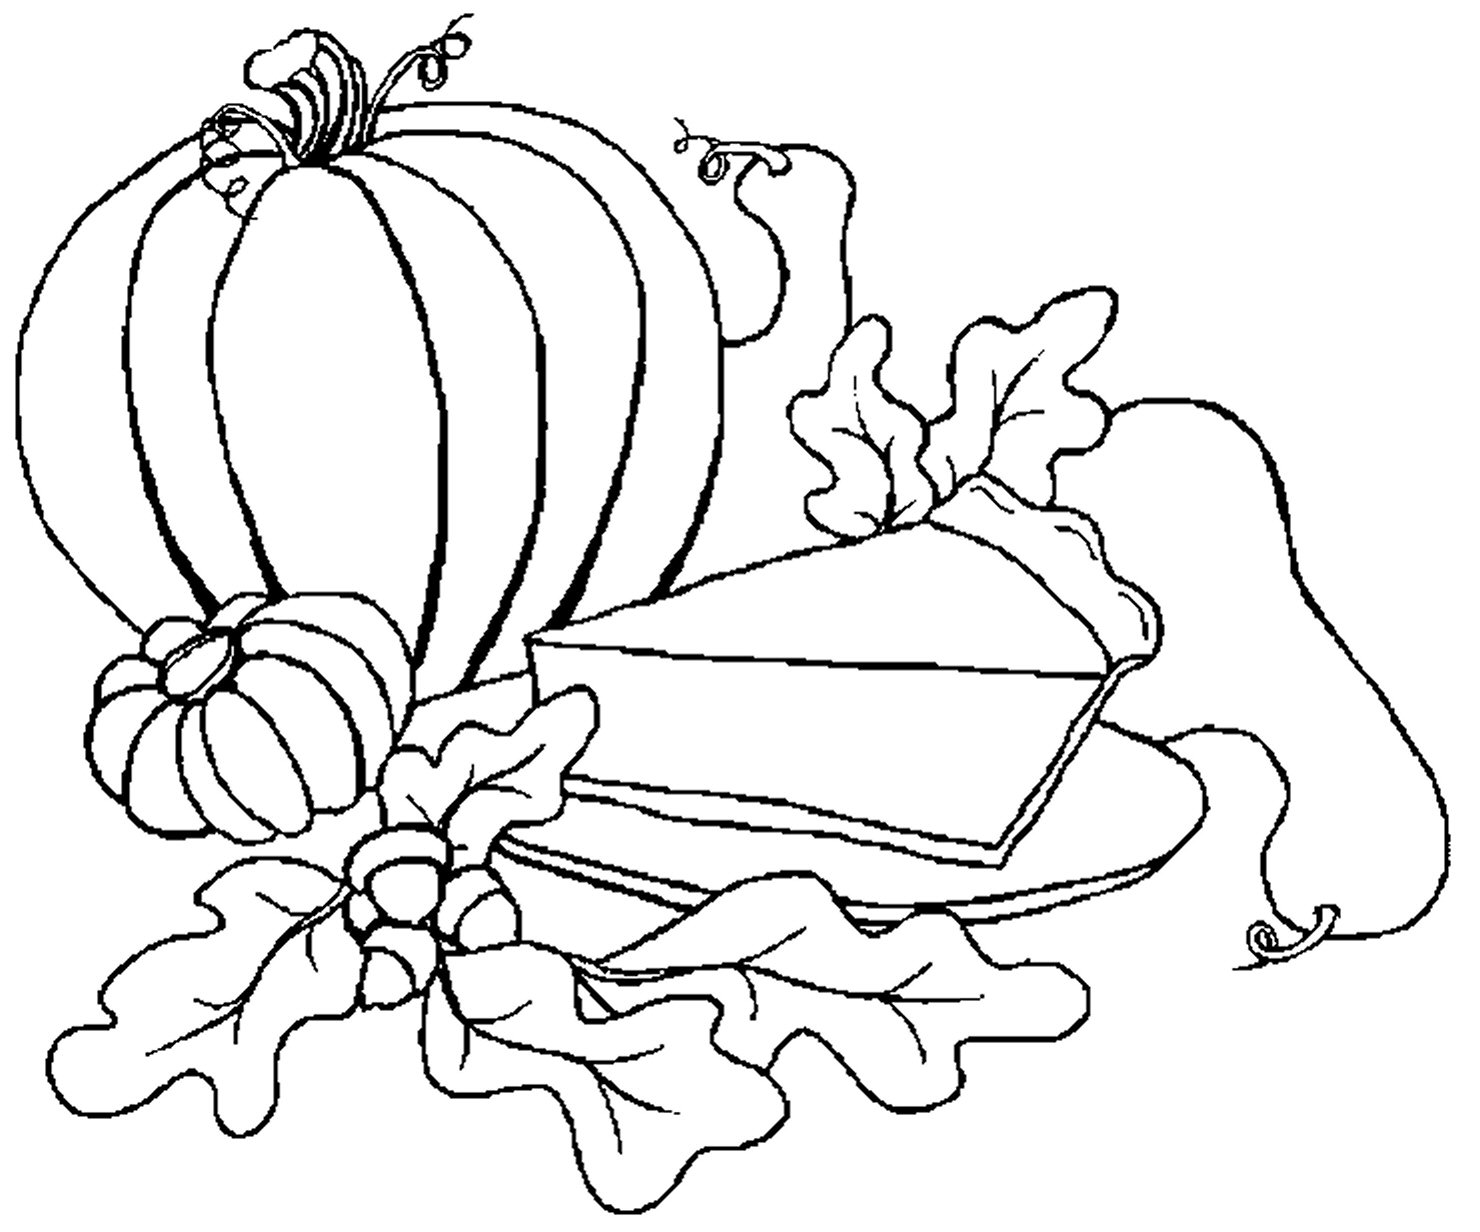 pumpkin coloring pages kids - Coloring Pictures For Toddlers